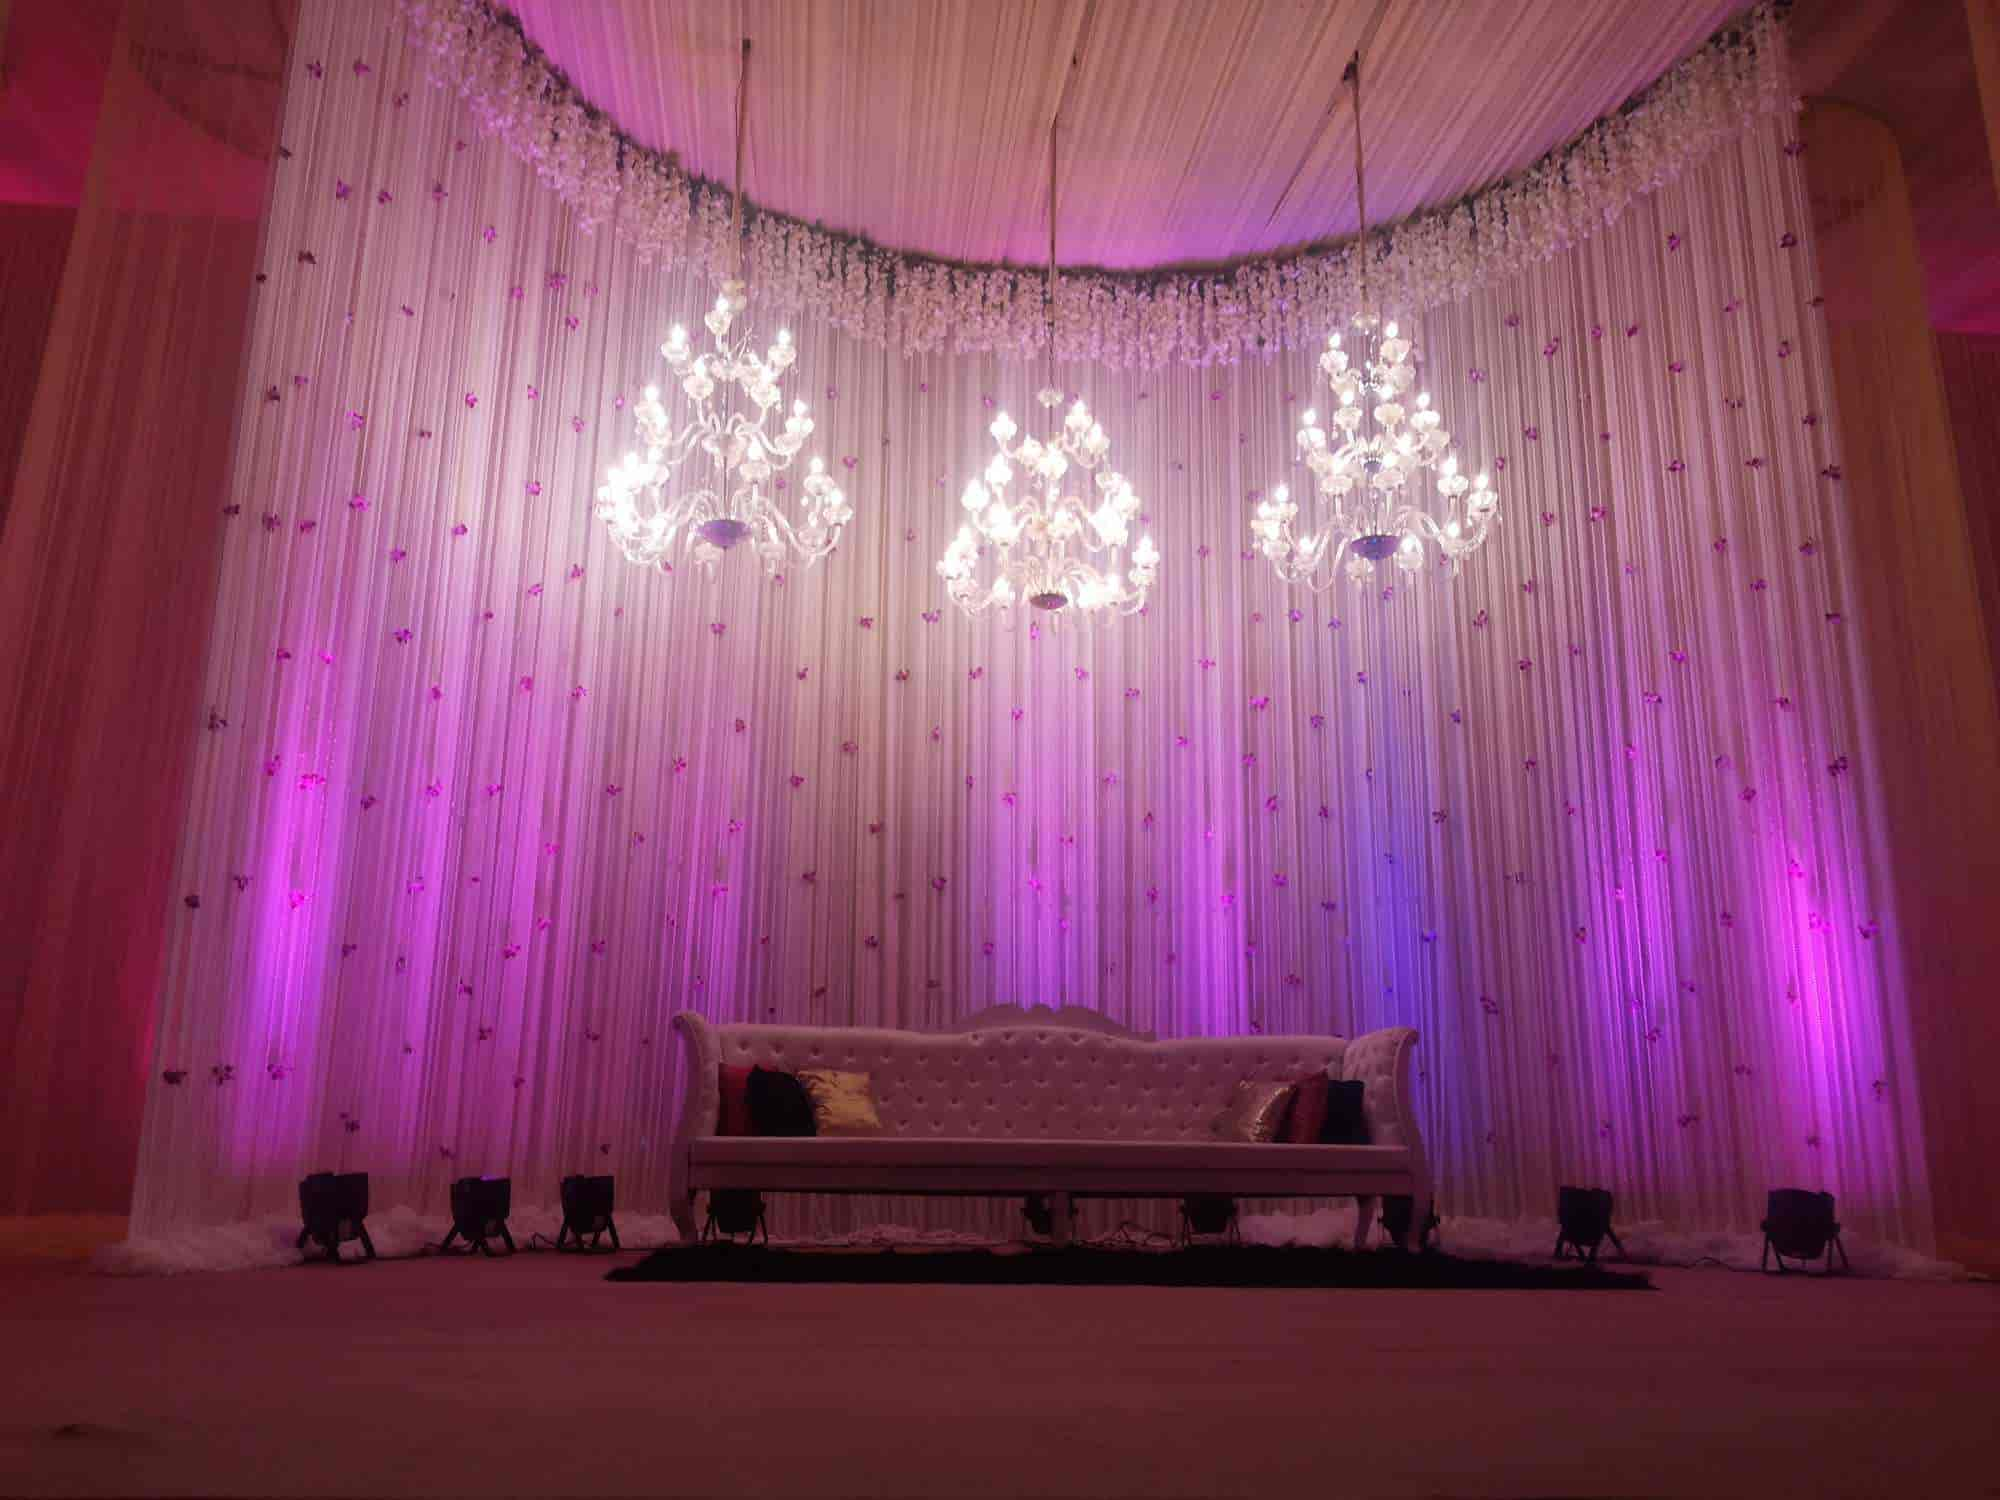 N wedding lighting design lumpy bumpy kups n cakes archives